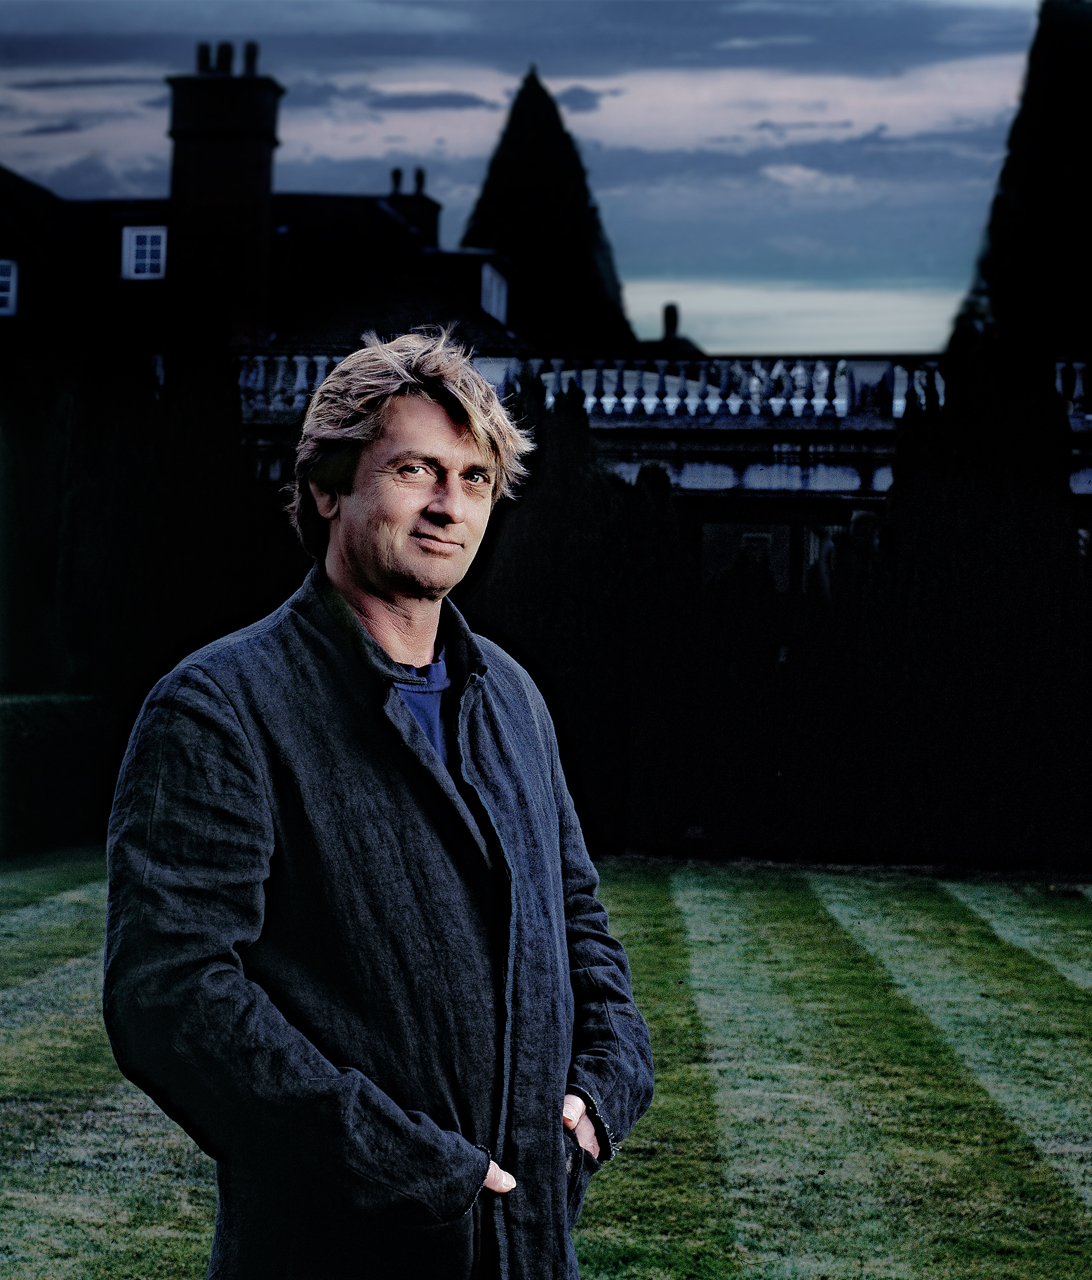 Mike-Oldfield-Manor-House-Rock-of-Ages.-dps.jpg